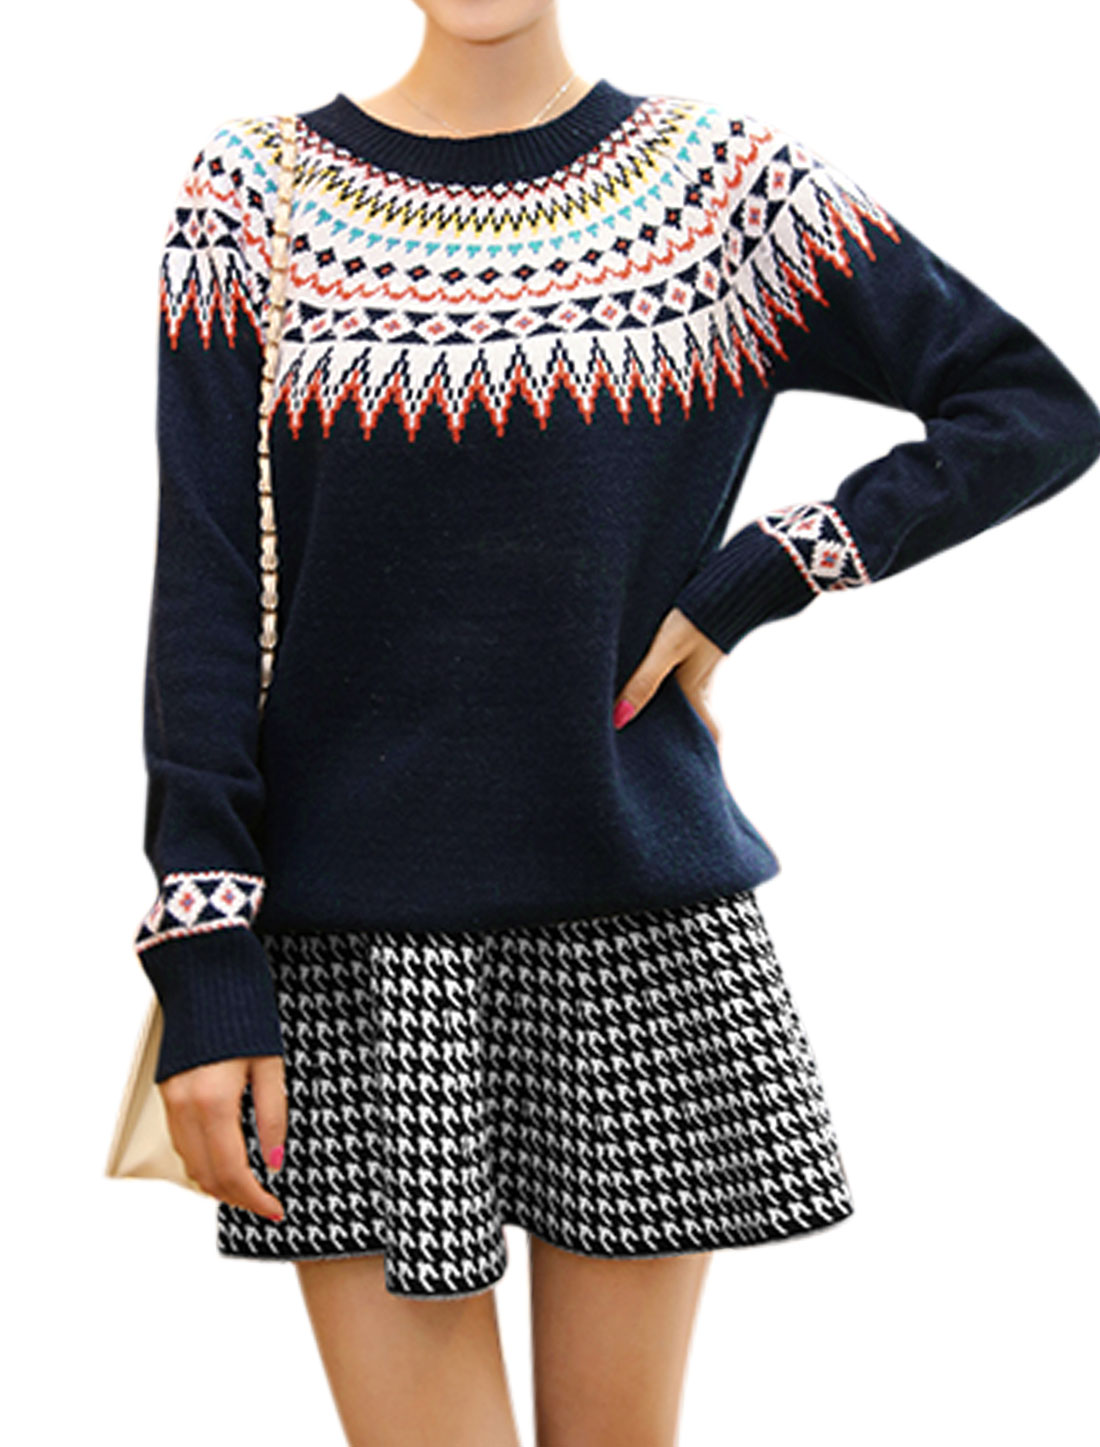 Women Round Neck Long Sleeve Sweater w Houndstooth Pattern Skirt Navy Blue S